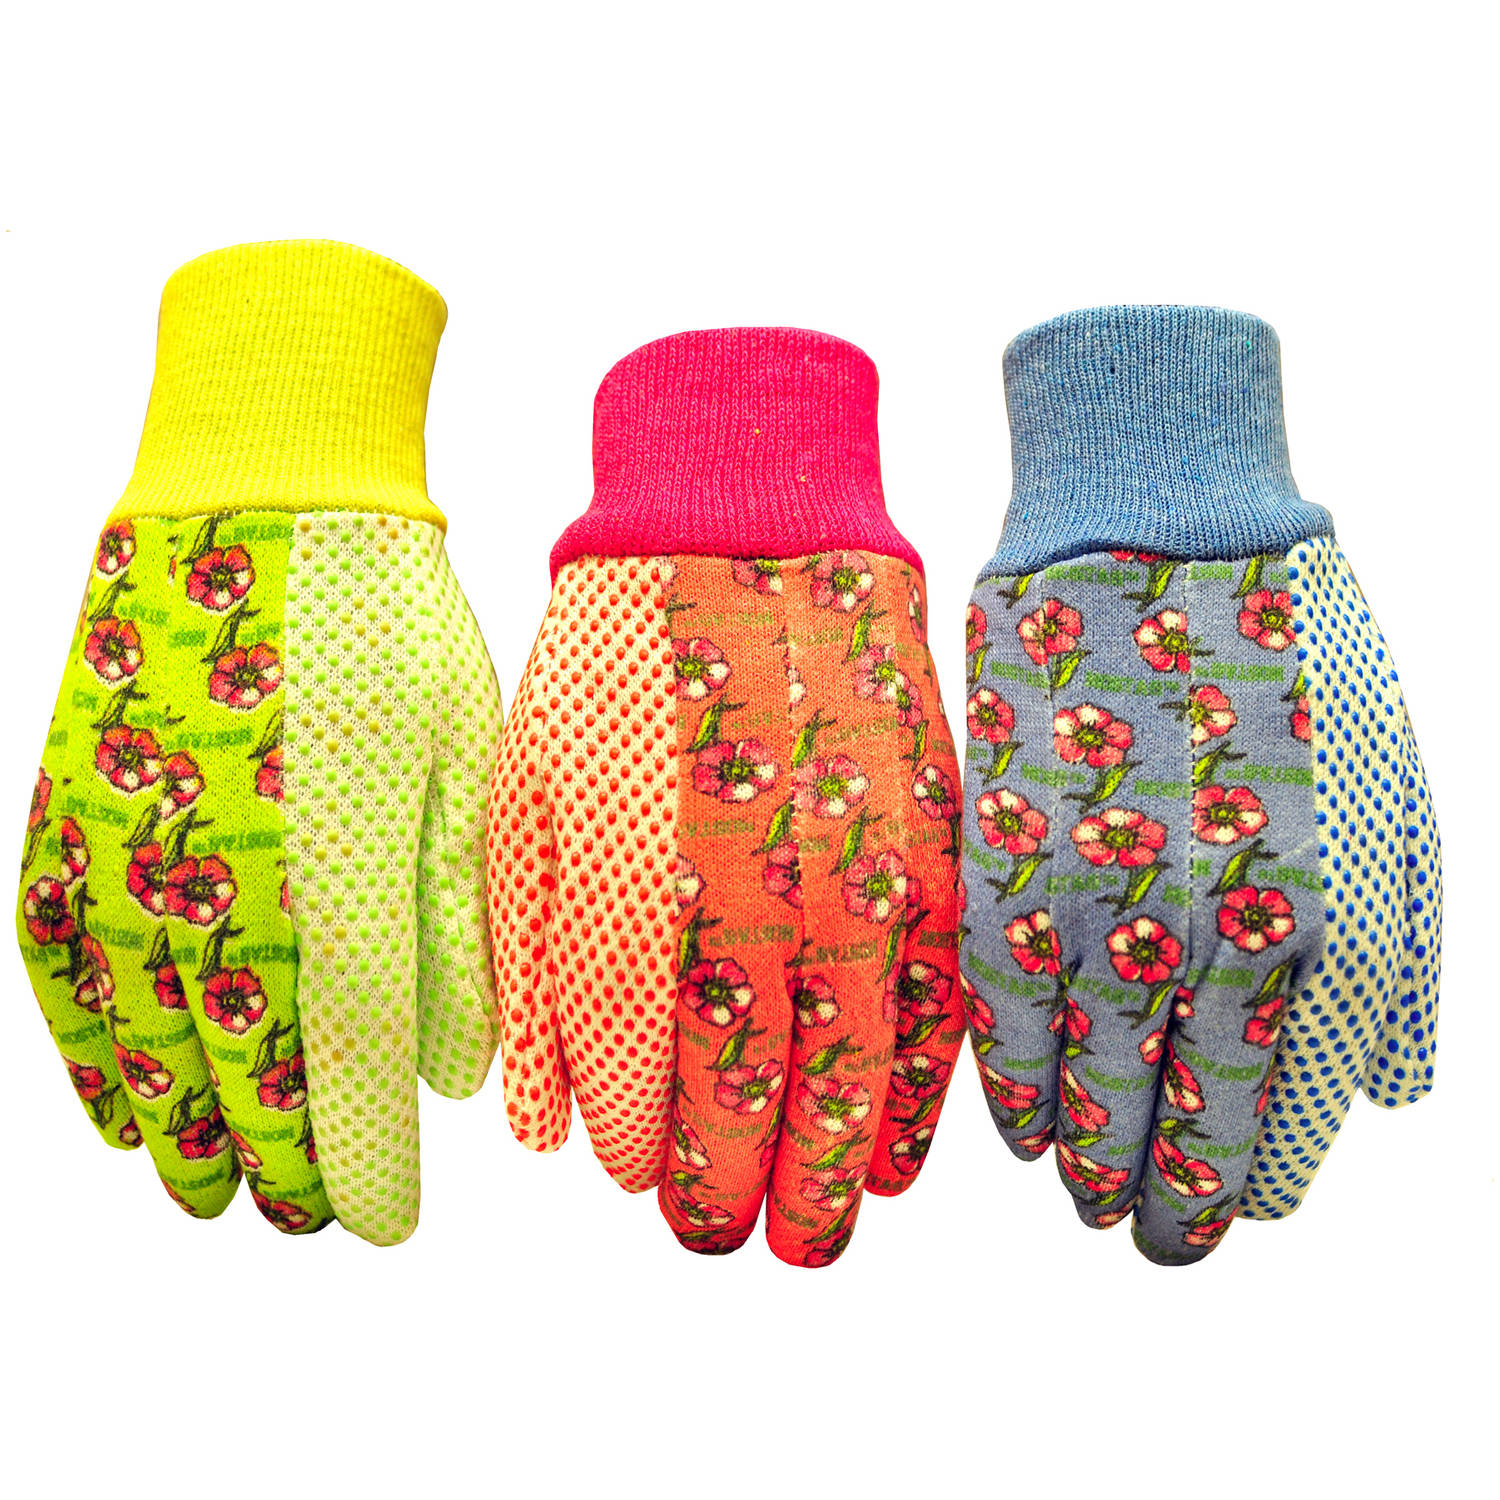 G & F Soft Jersey Garden Gloves, 3 Pairs, Green/Pink/Blue, Women